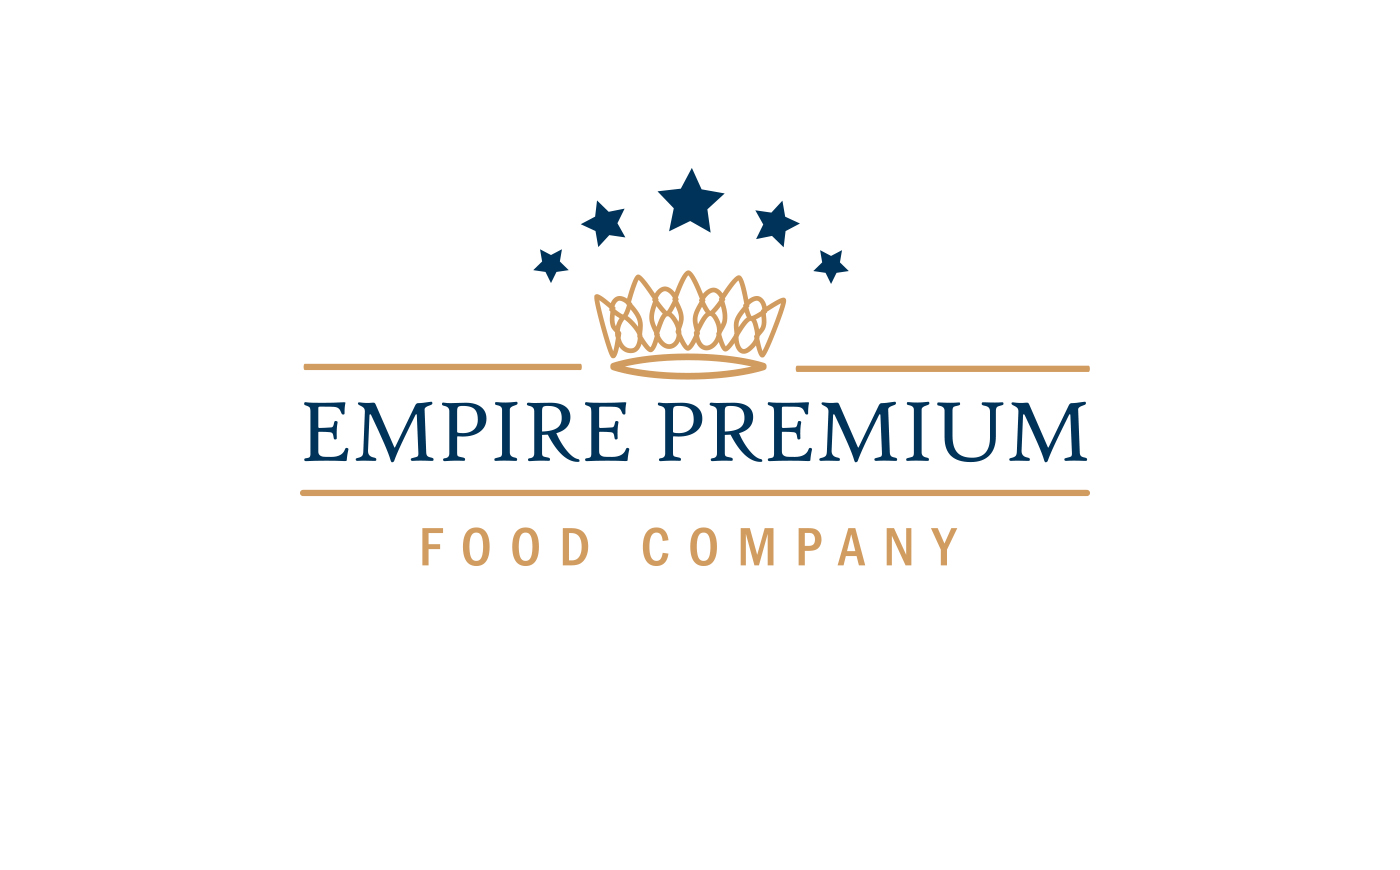 Empire Premium Food Company